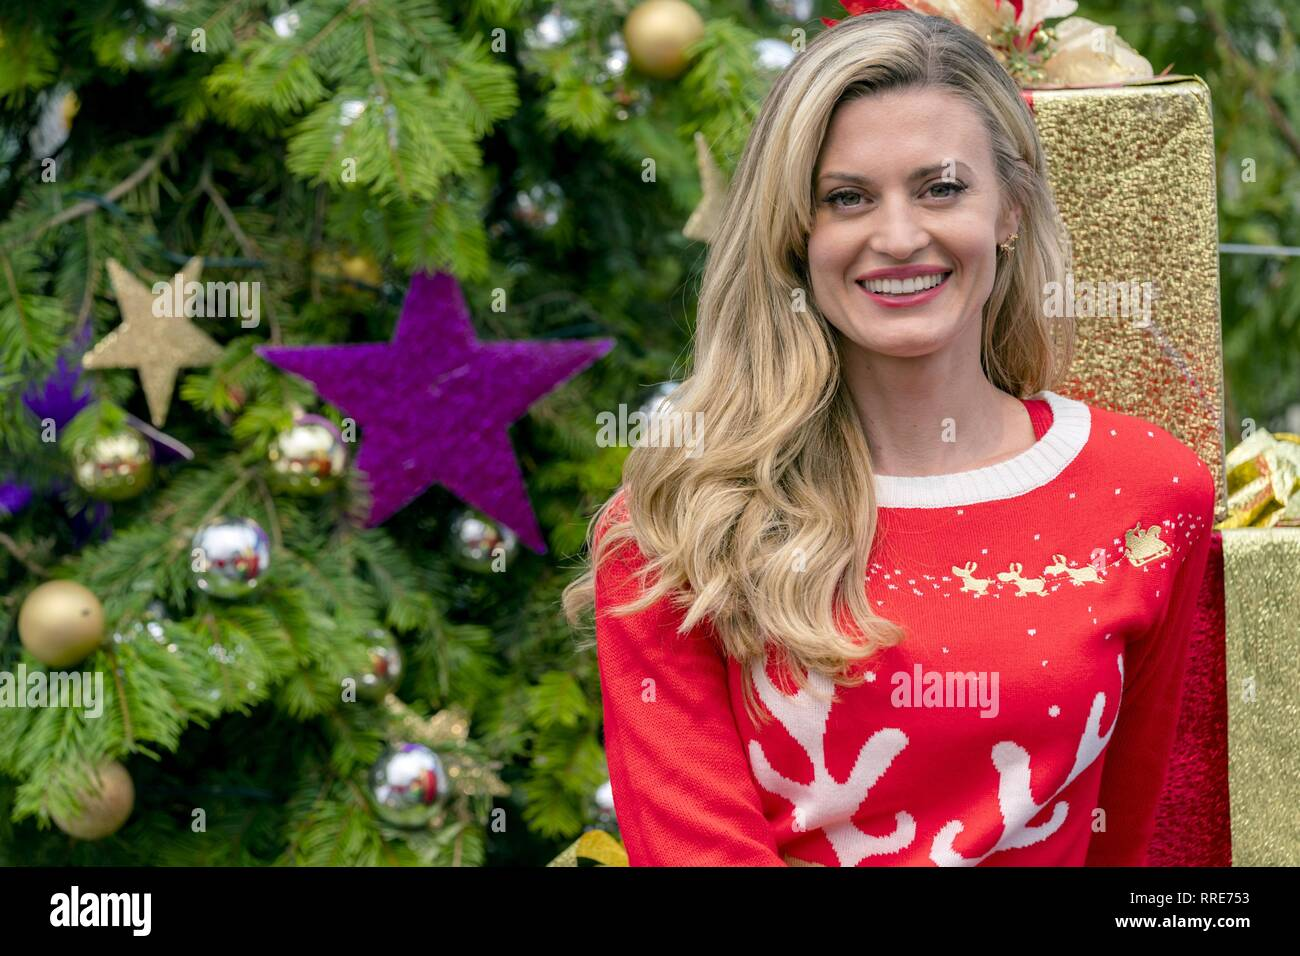 MISS CHRISTMAS, BROOKE D'ORSAY, 2017 - Stock Image